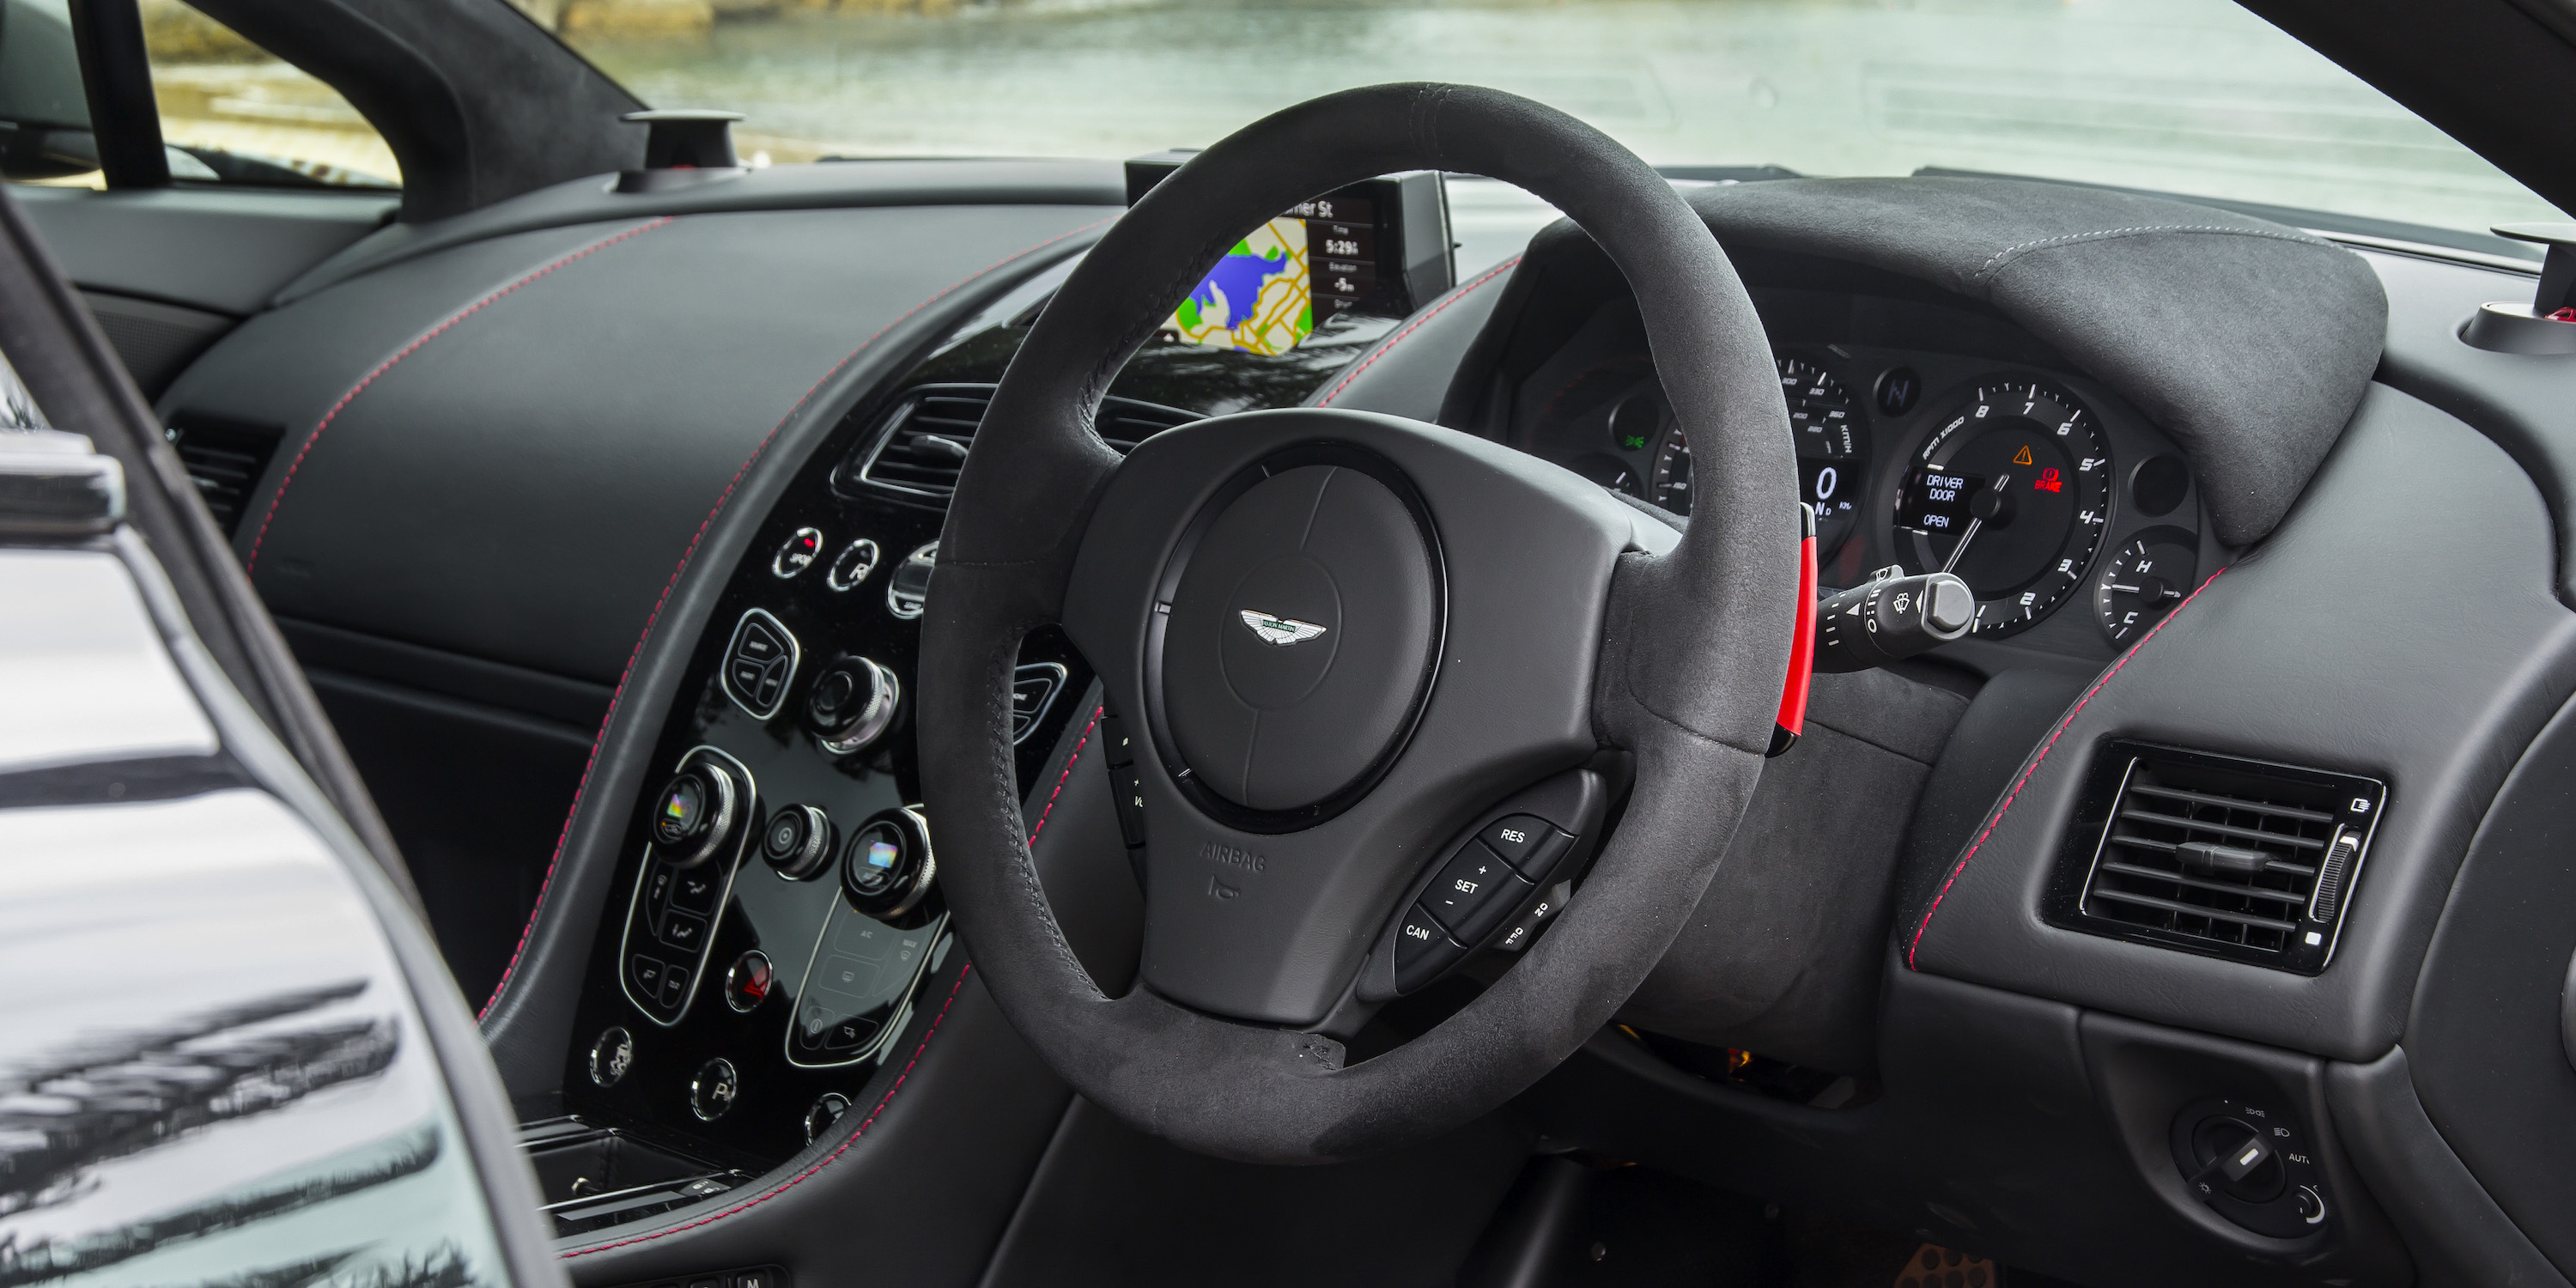 2016 Aston Martin Vantage Gt Steering (Photo 23 of 25)